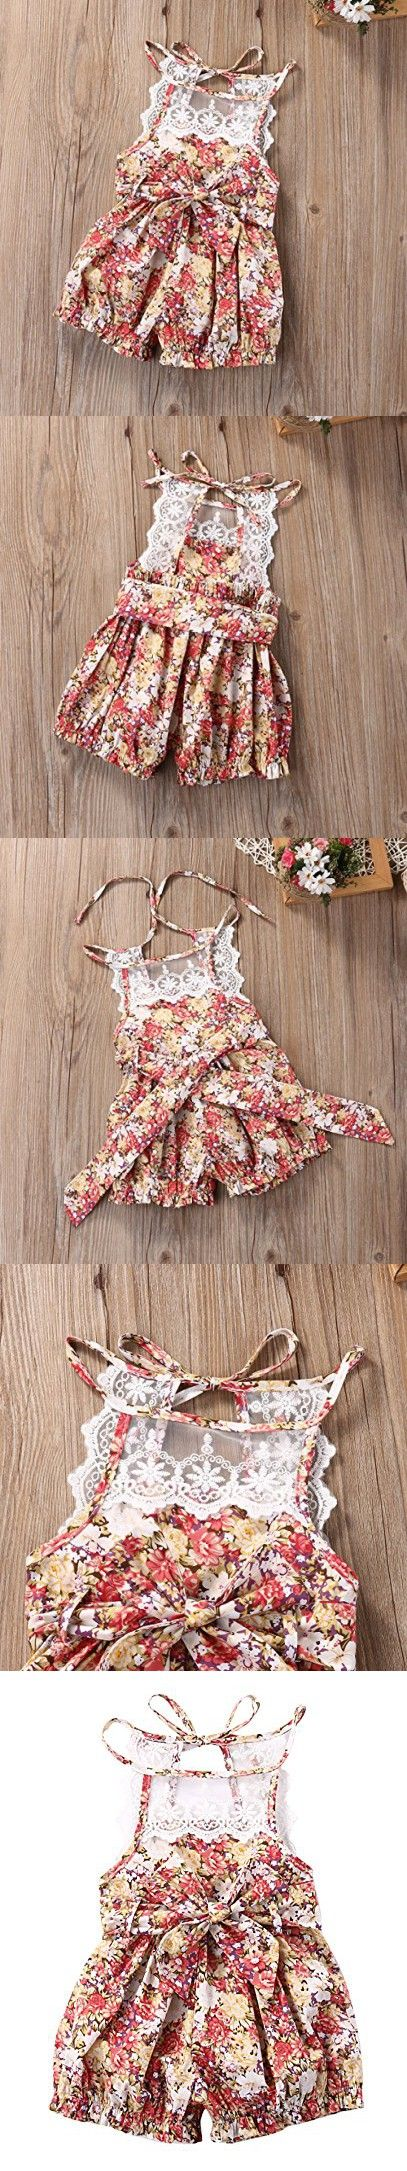 Baby Girls Lace Cotton Floral Rompers Toddler Sleeveless Jumpsuit Sunsuit Outfits(6-12M, floral)